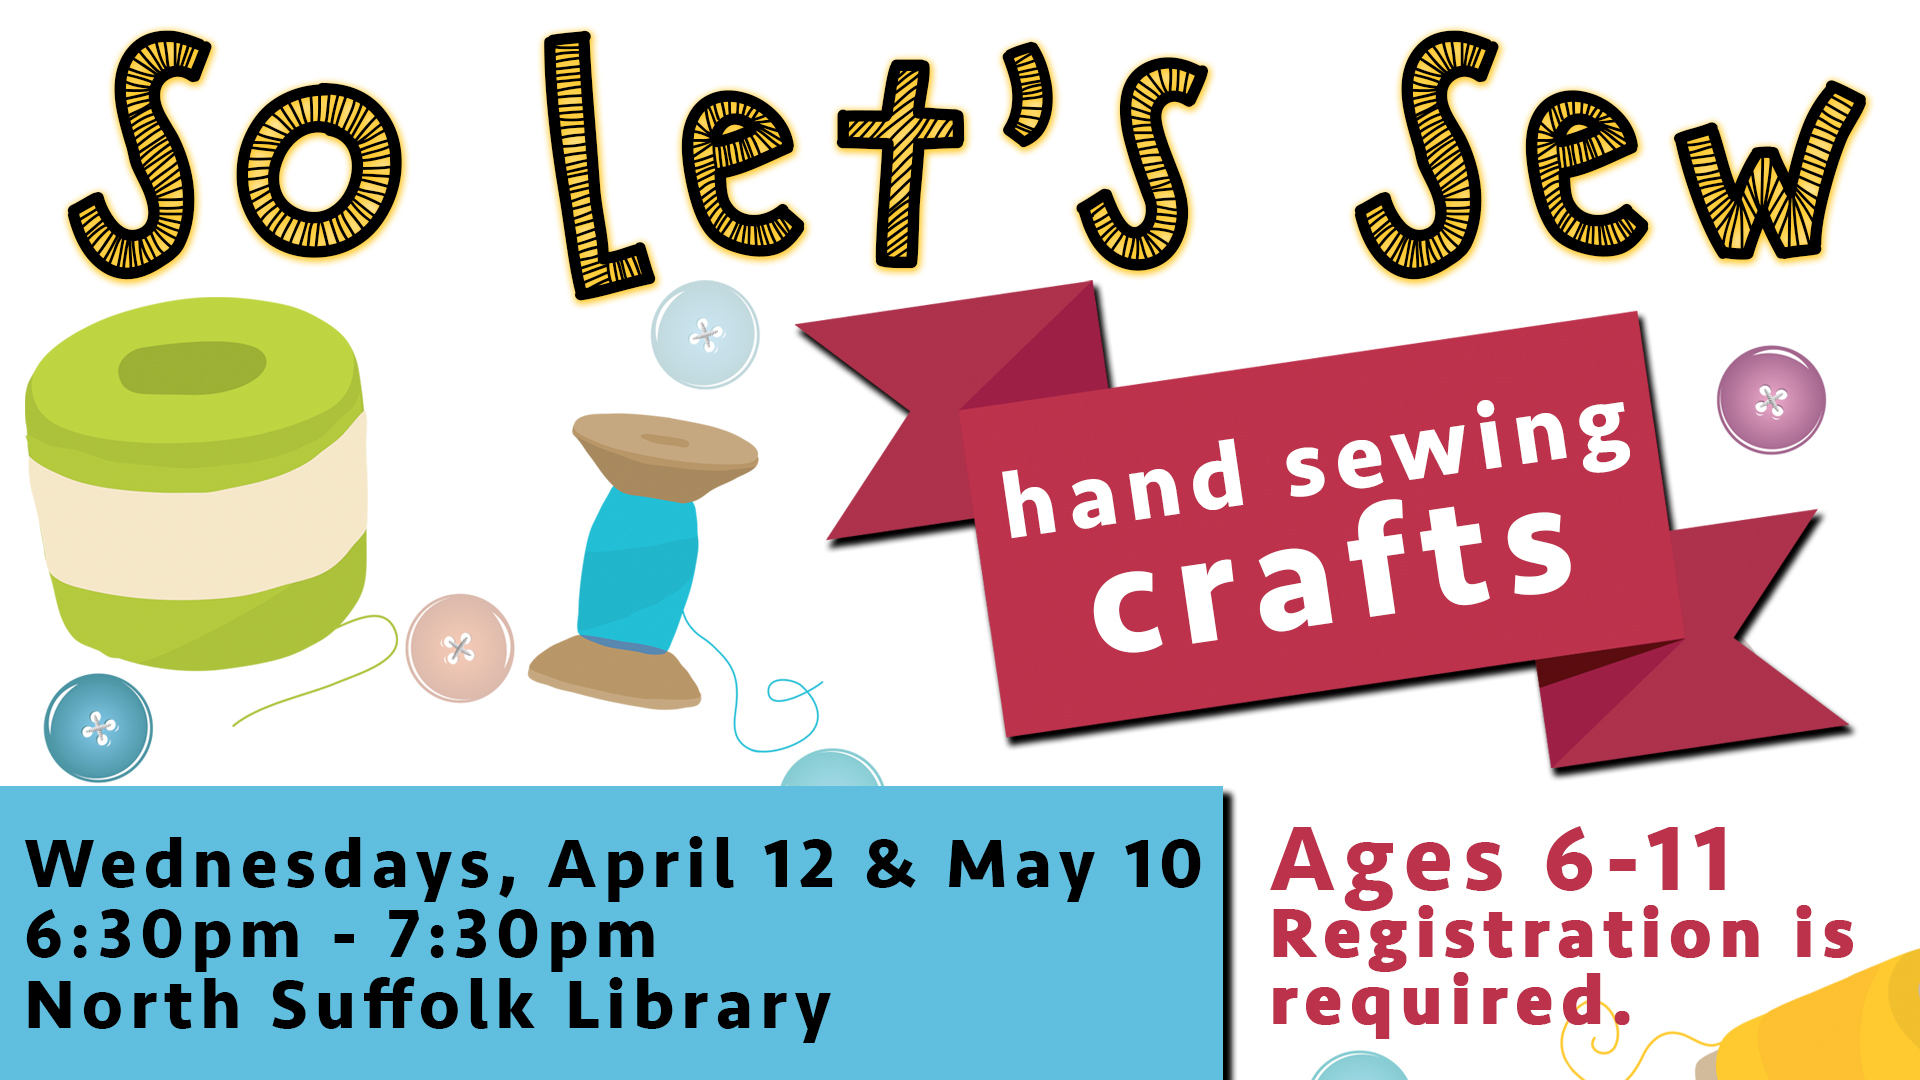 So Let's Sew--Hand Sewing Crafts